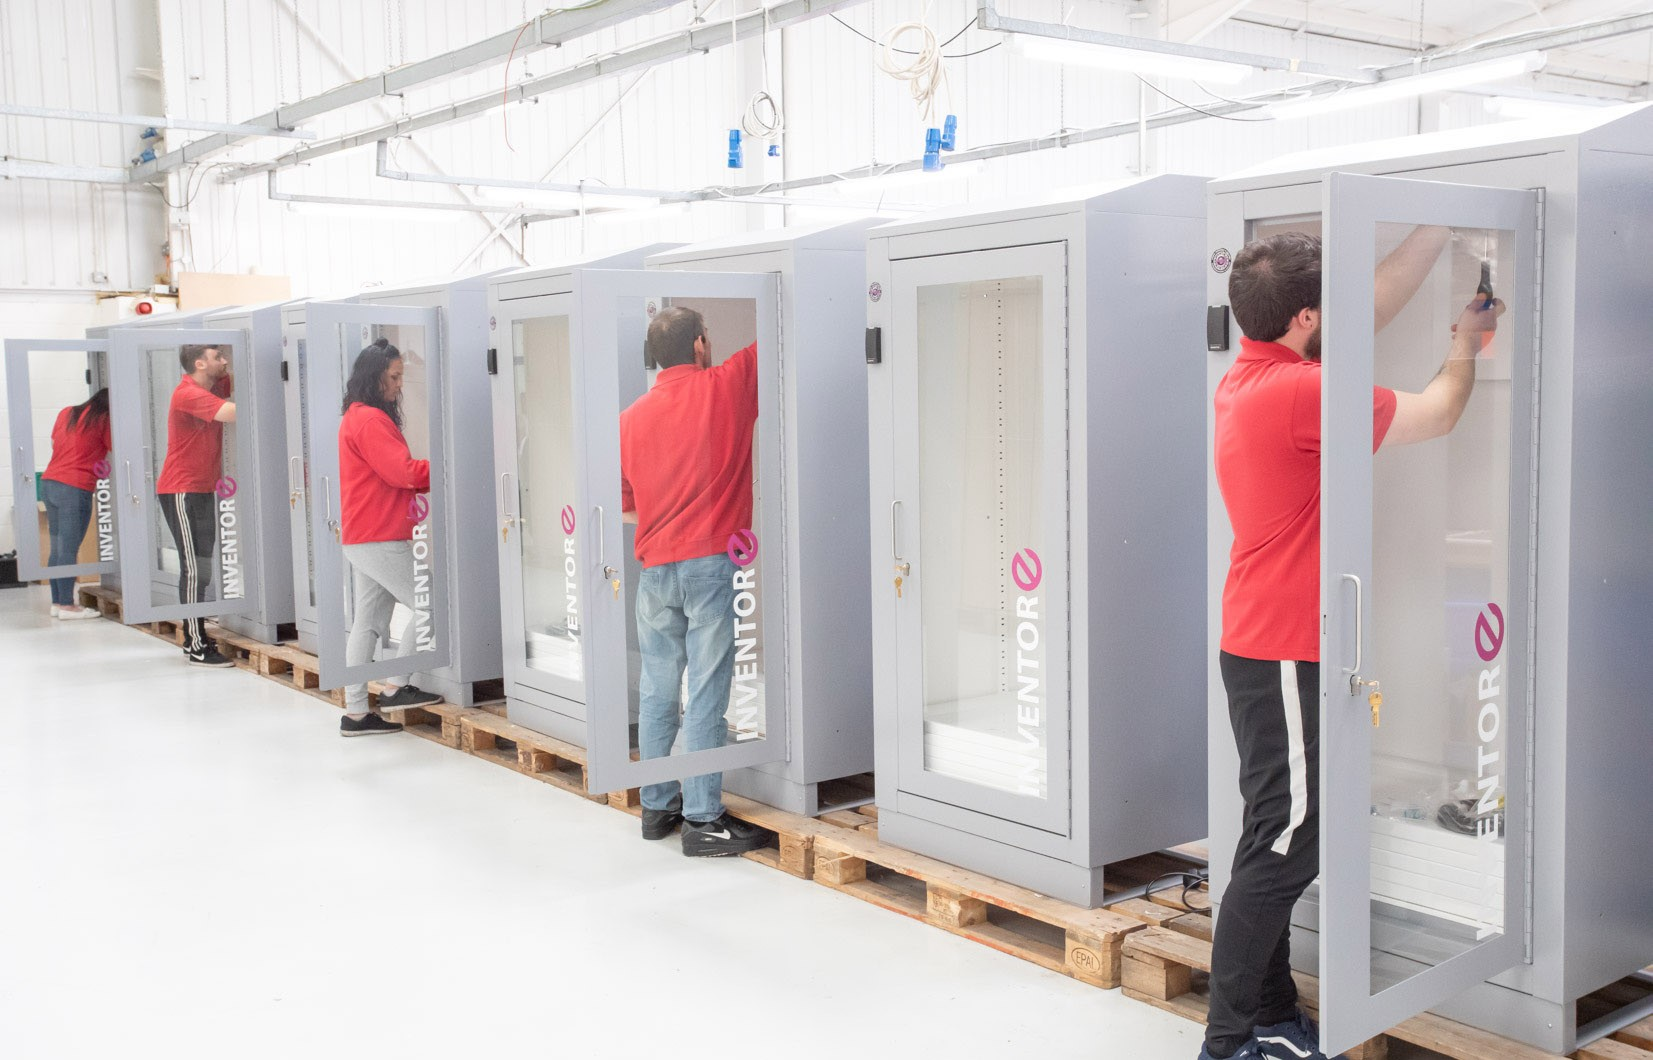 PP's outsourcing manufacturing offer helps Inventor-e create ten jobs as part of its 60% growth » Inventor e Line » PP Control & Automation